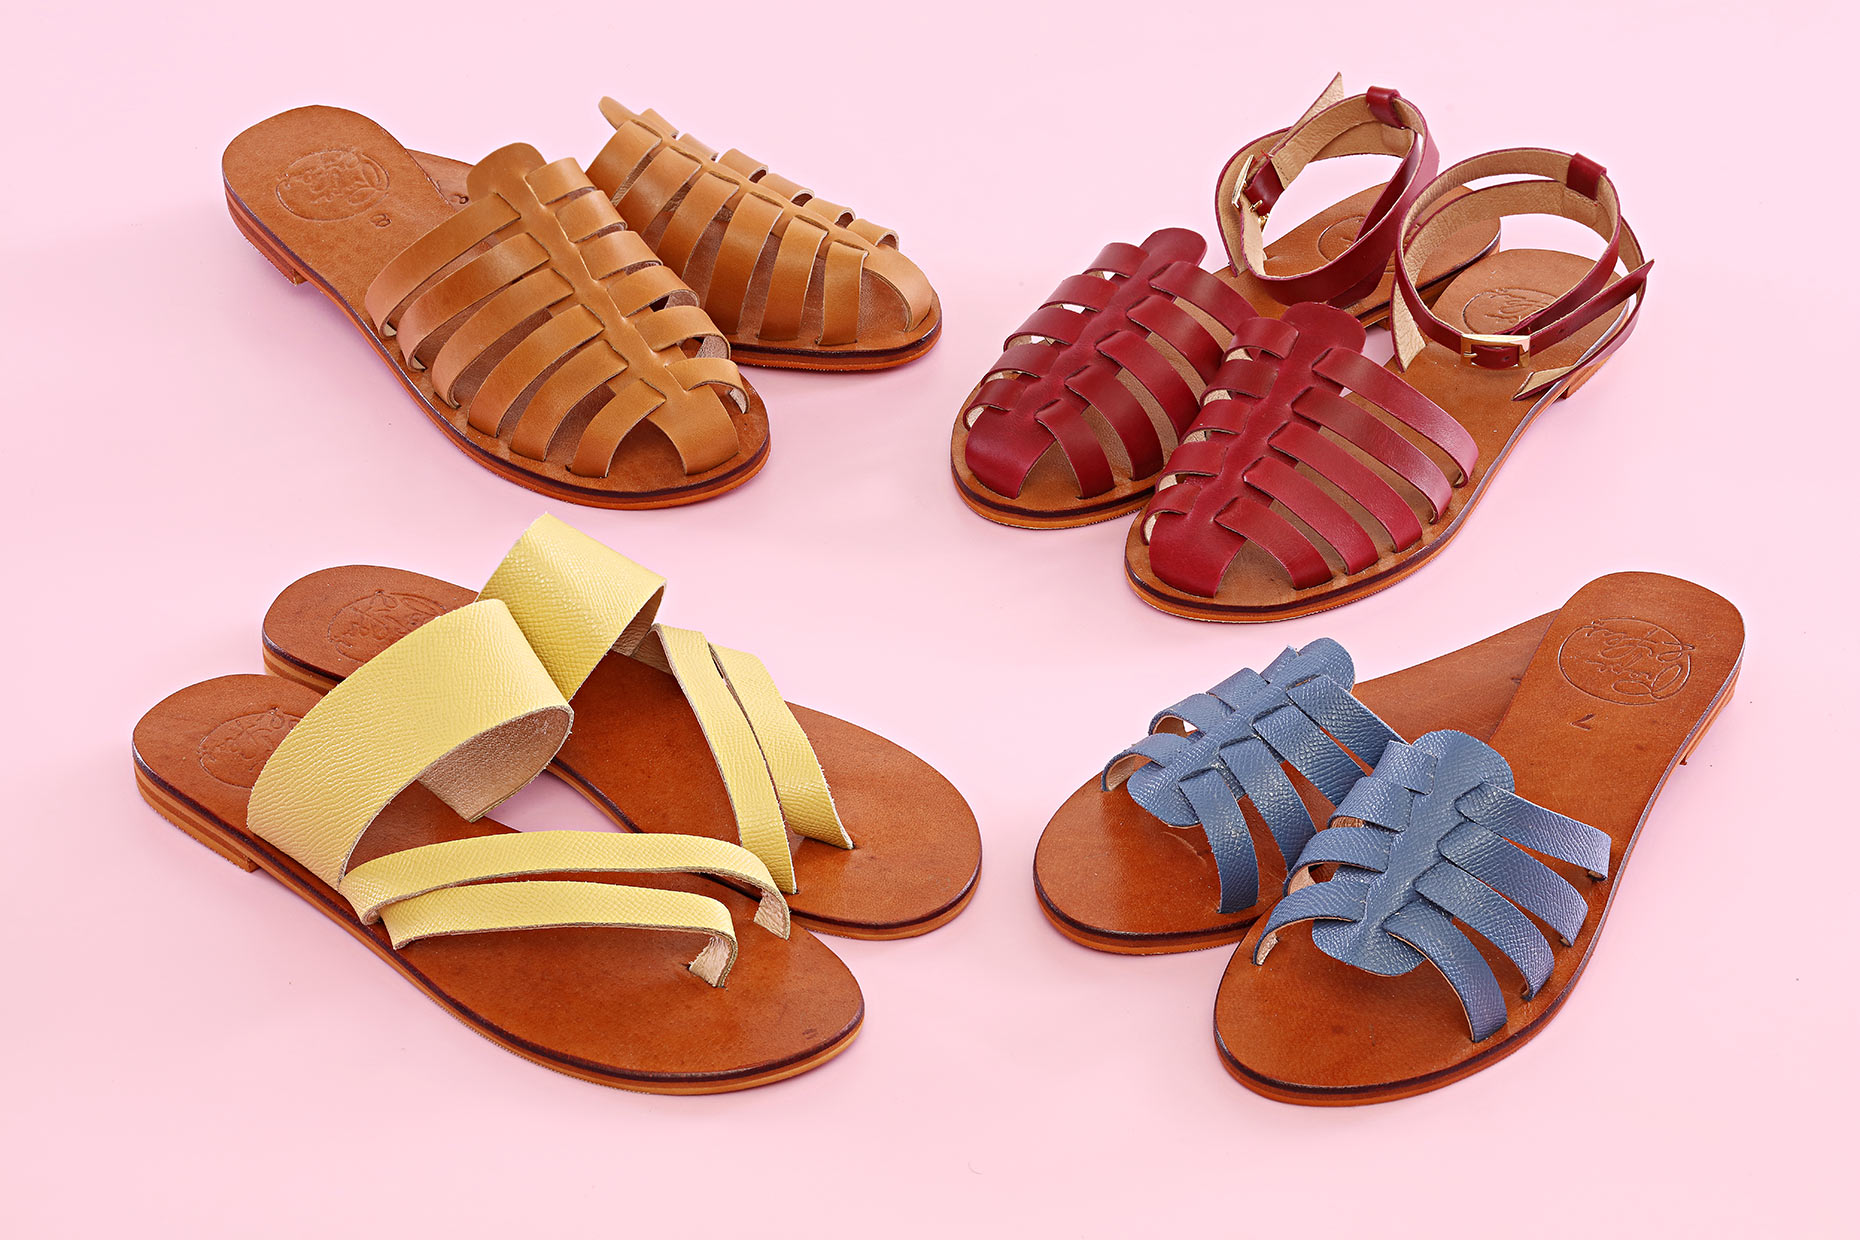 sandals-on-pink-background